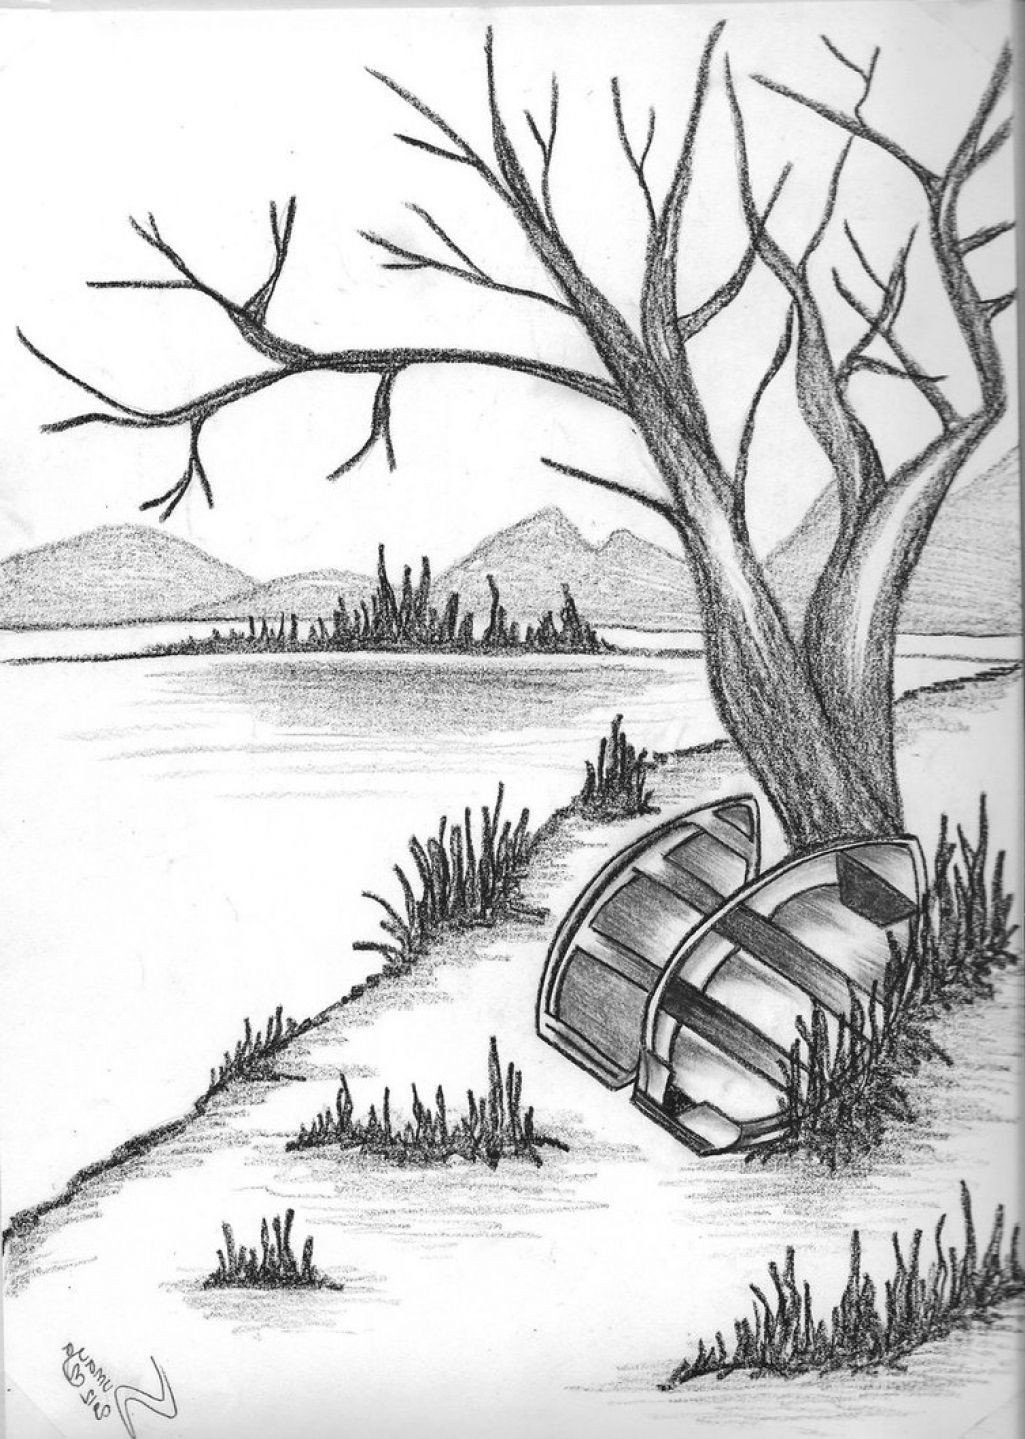 Beautiful Drawings Of Nature Pencil Drawing Natural Scenery Simple Pencil Drawings